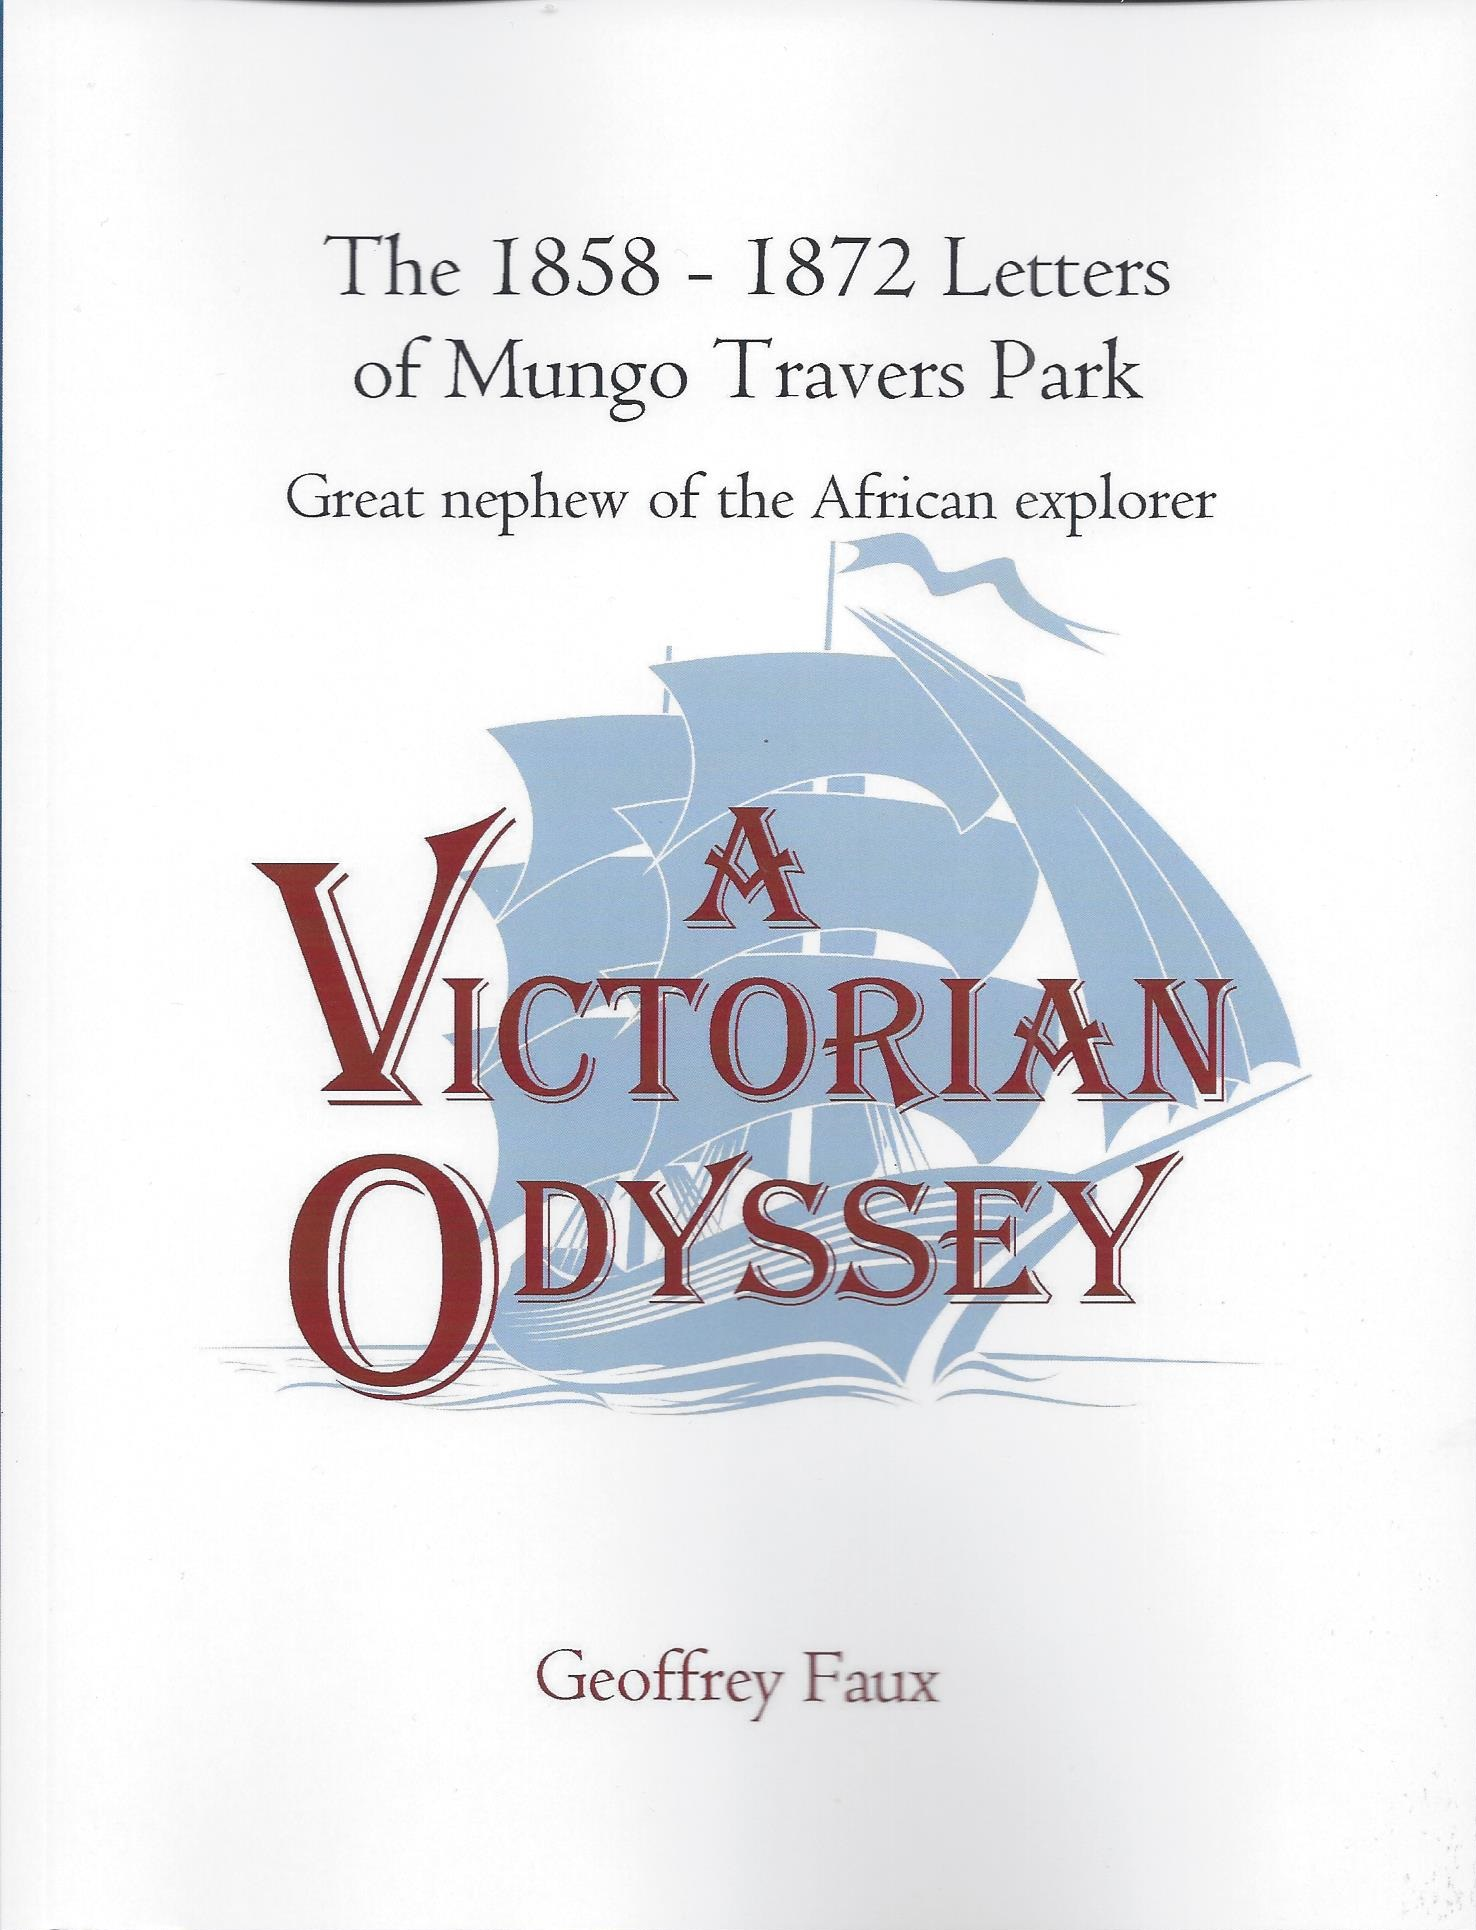 A Victorian Odyssey: The 1858-1872 Letters of Mungo Travers Park